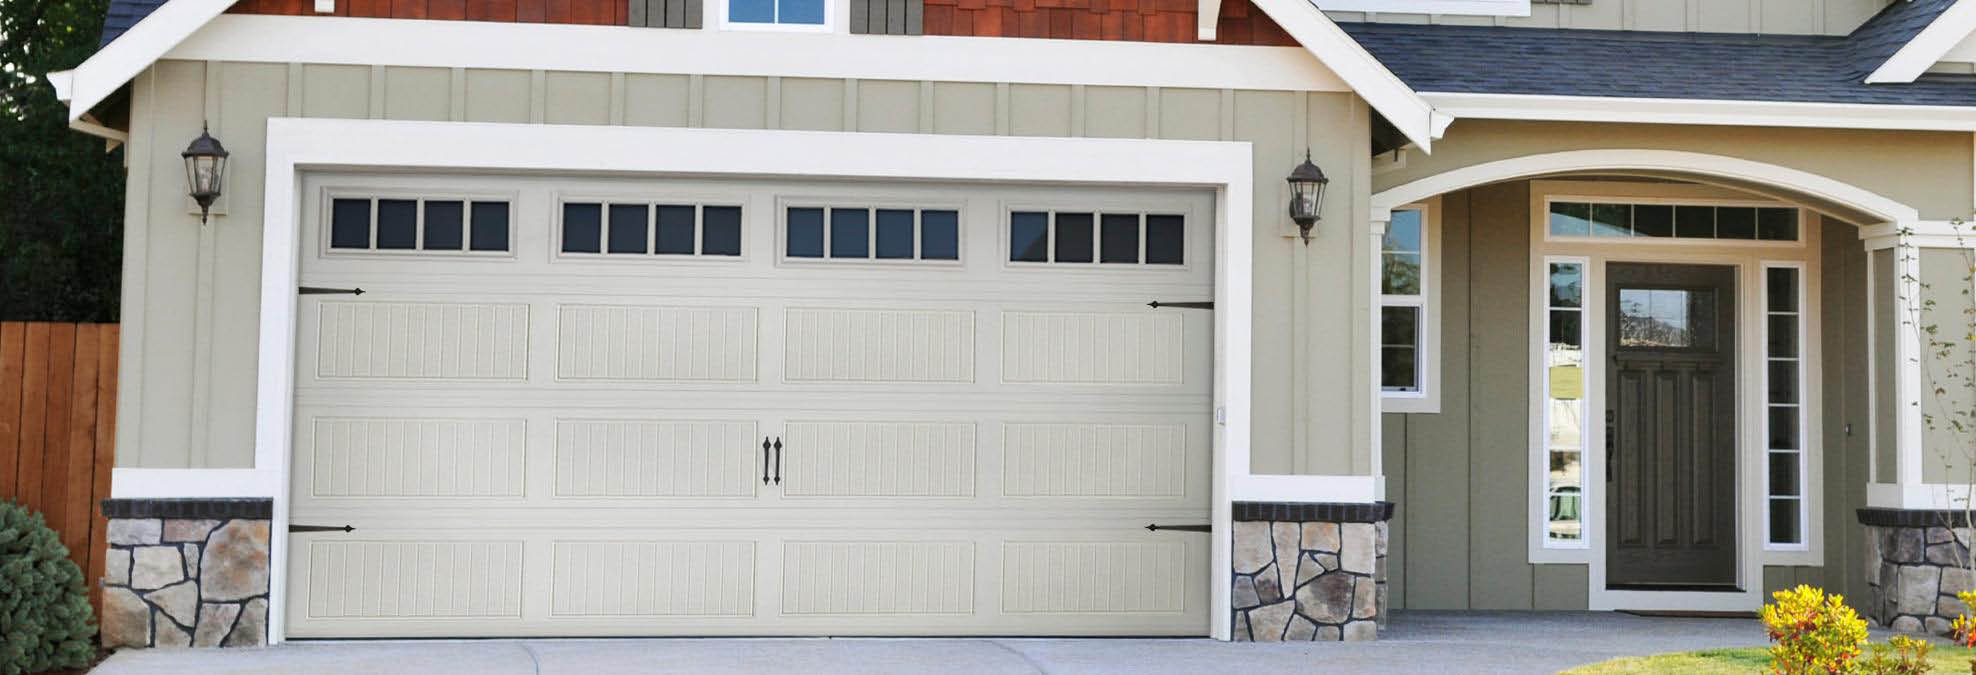 24/7 Emergency Garage Door Repair Services in Phoenix, AZ